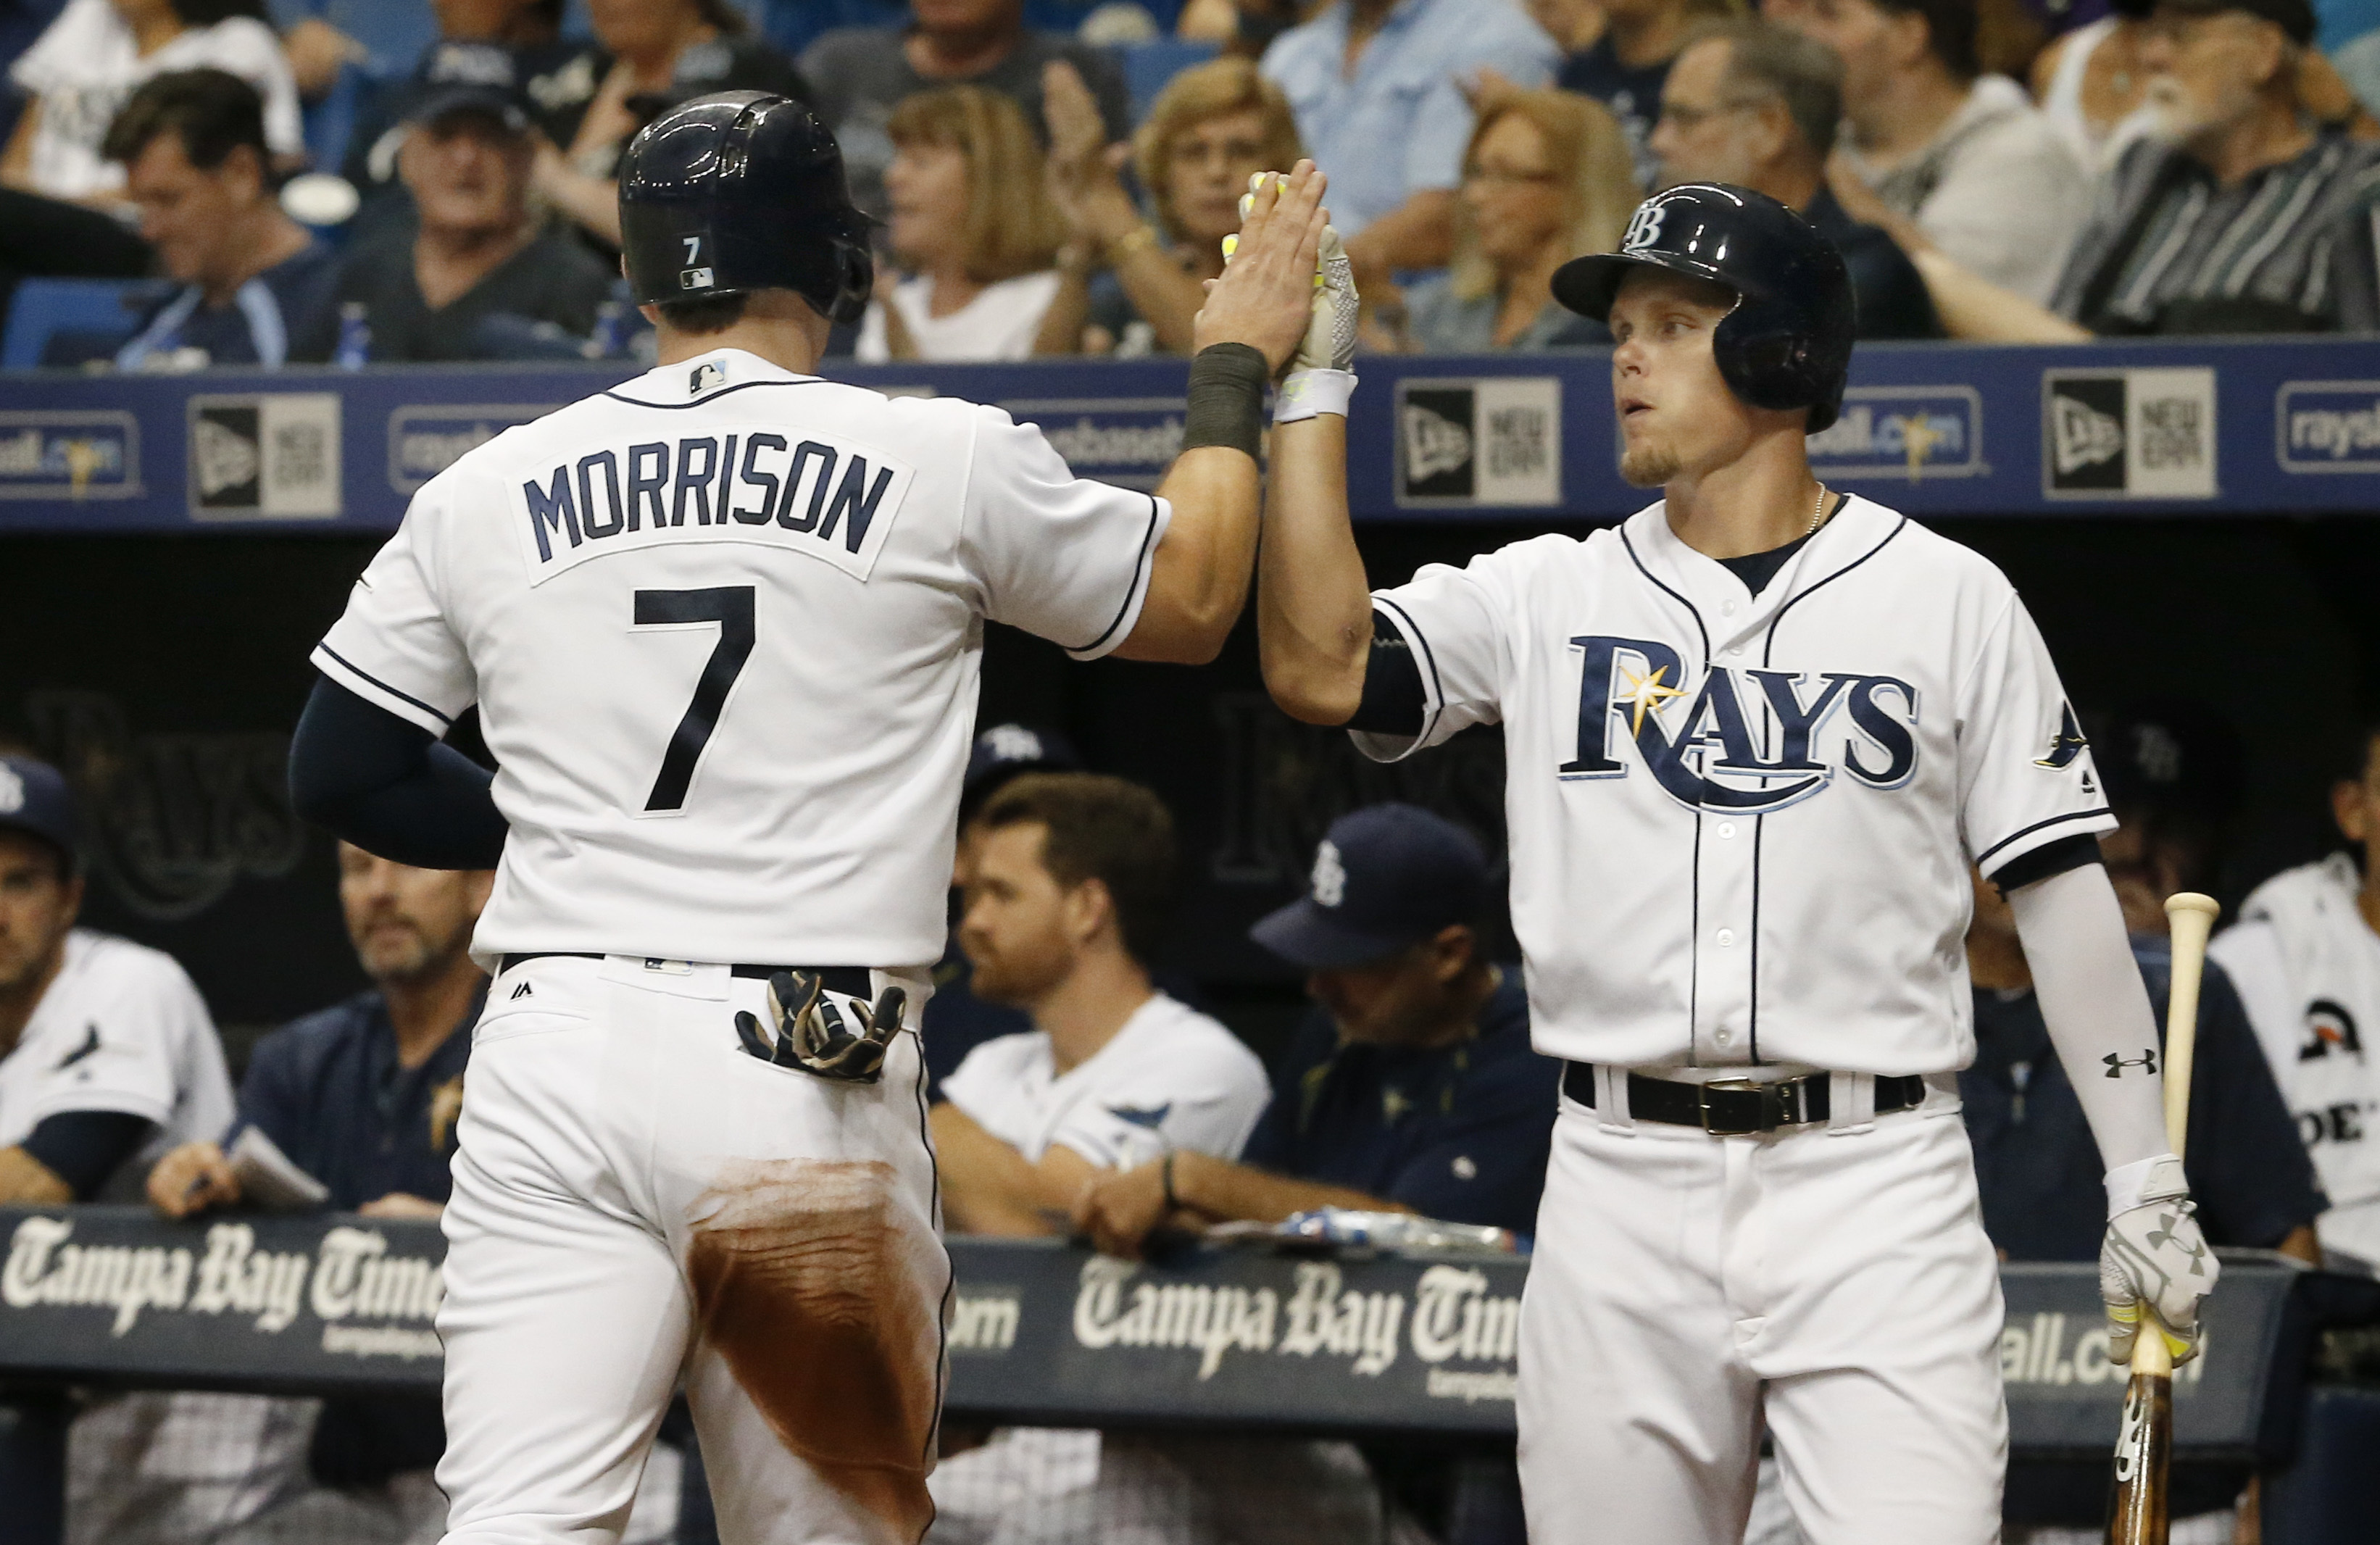 Tampa Bay Rays center fielder Brandon Guyer congratulates Logan Morrison (7) who scored a run during the fourth inning of a baseball game against the Baltimore Orioles, Saturday, July 16, 2016, in St. Petersburg, Fla. (AP Photo/Reinhold Matay)